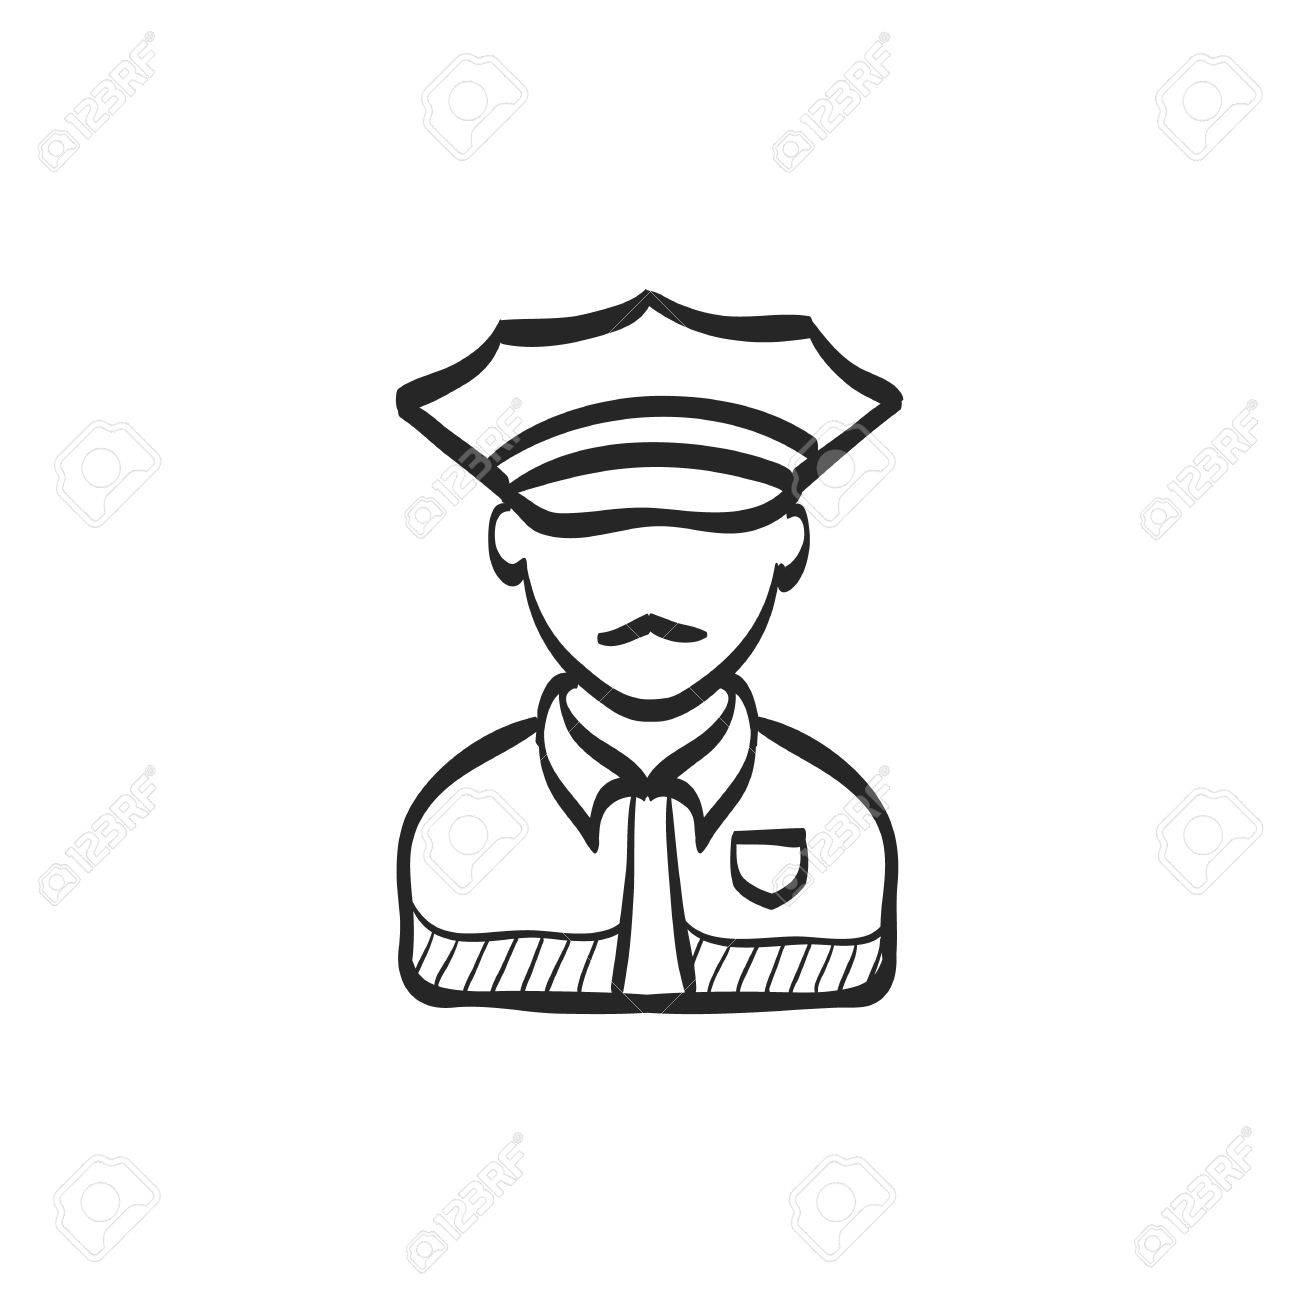 1300x1300 Police Avatar Icon In Doodle Sketch Lines. People Service Security